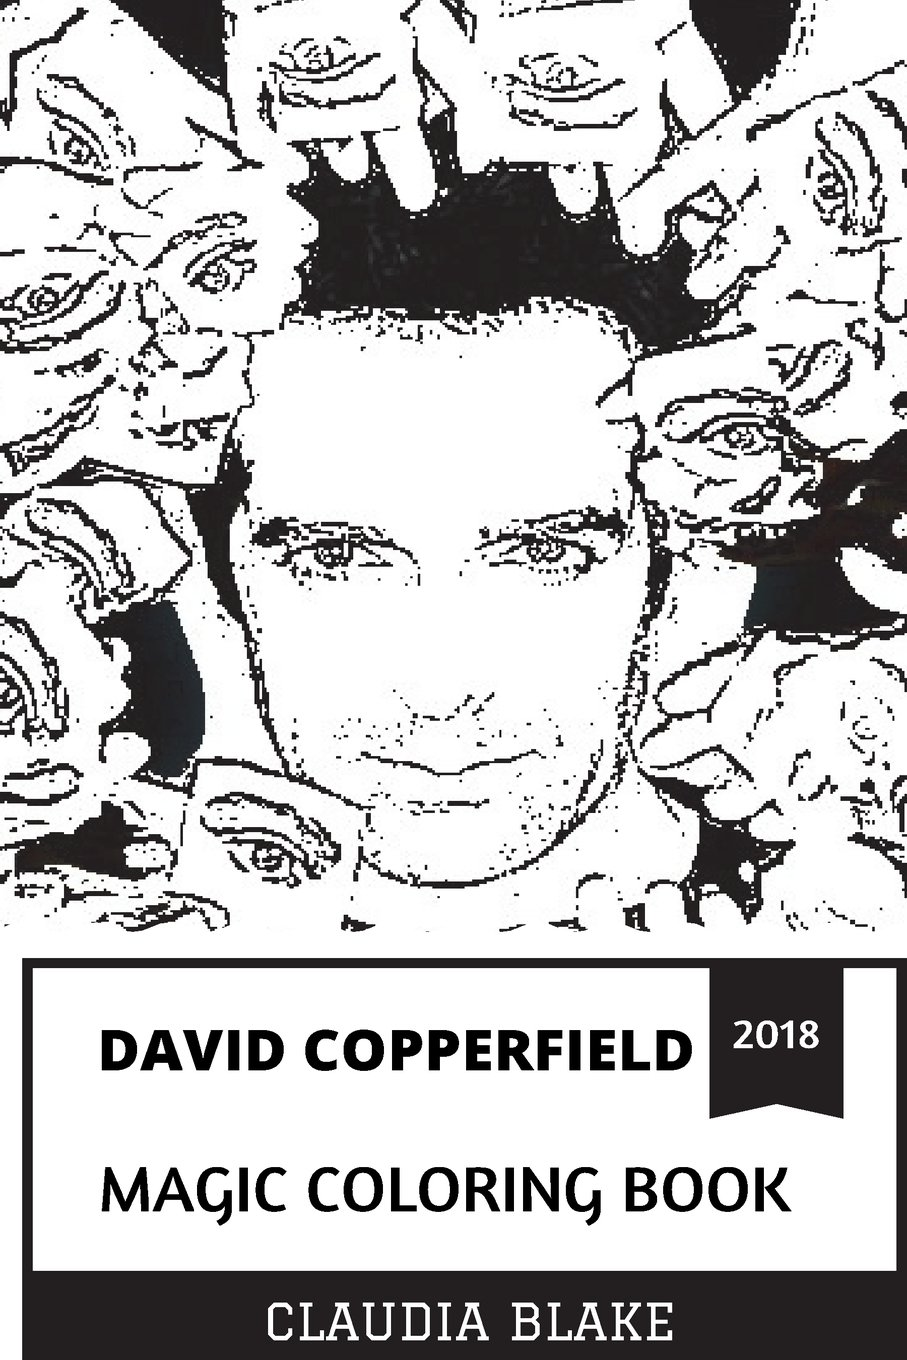 Read Online David Copperfield Magic Coloring Book: The Most Commercially Successful Magician in the History and Illusionist, Emmy Award Winner and Receiver of ... Adult Coloring Book (David Copperfield Books) ebook